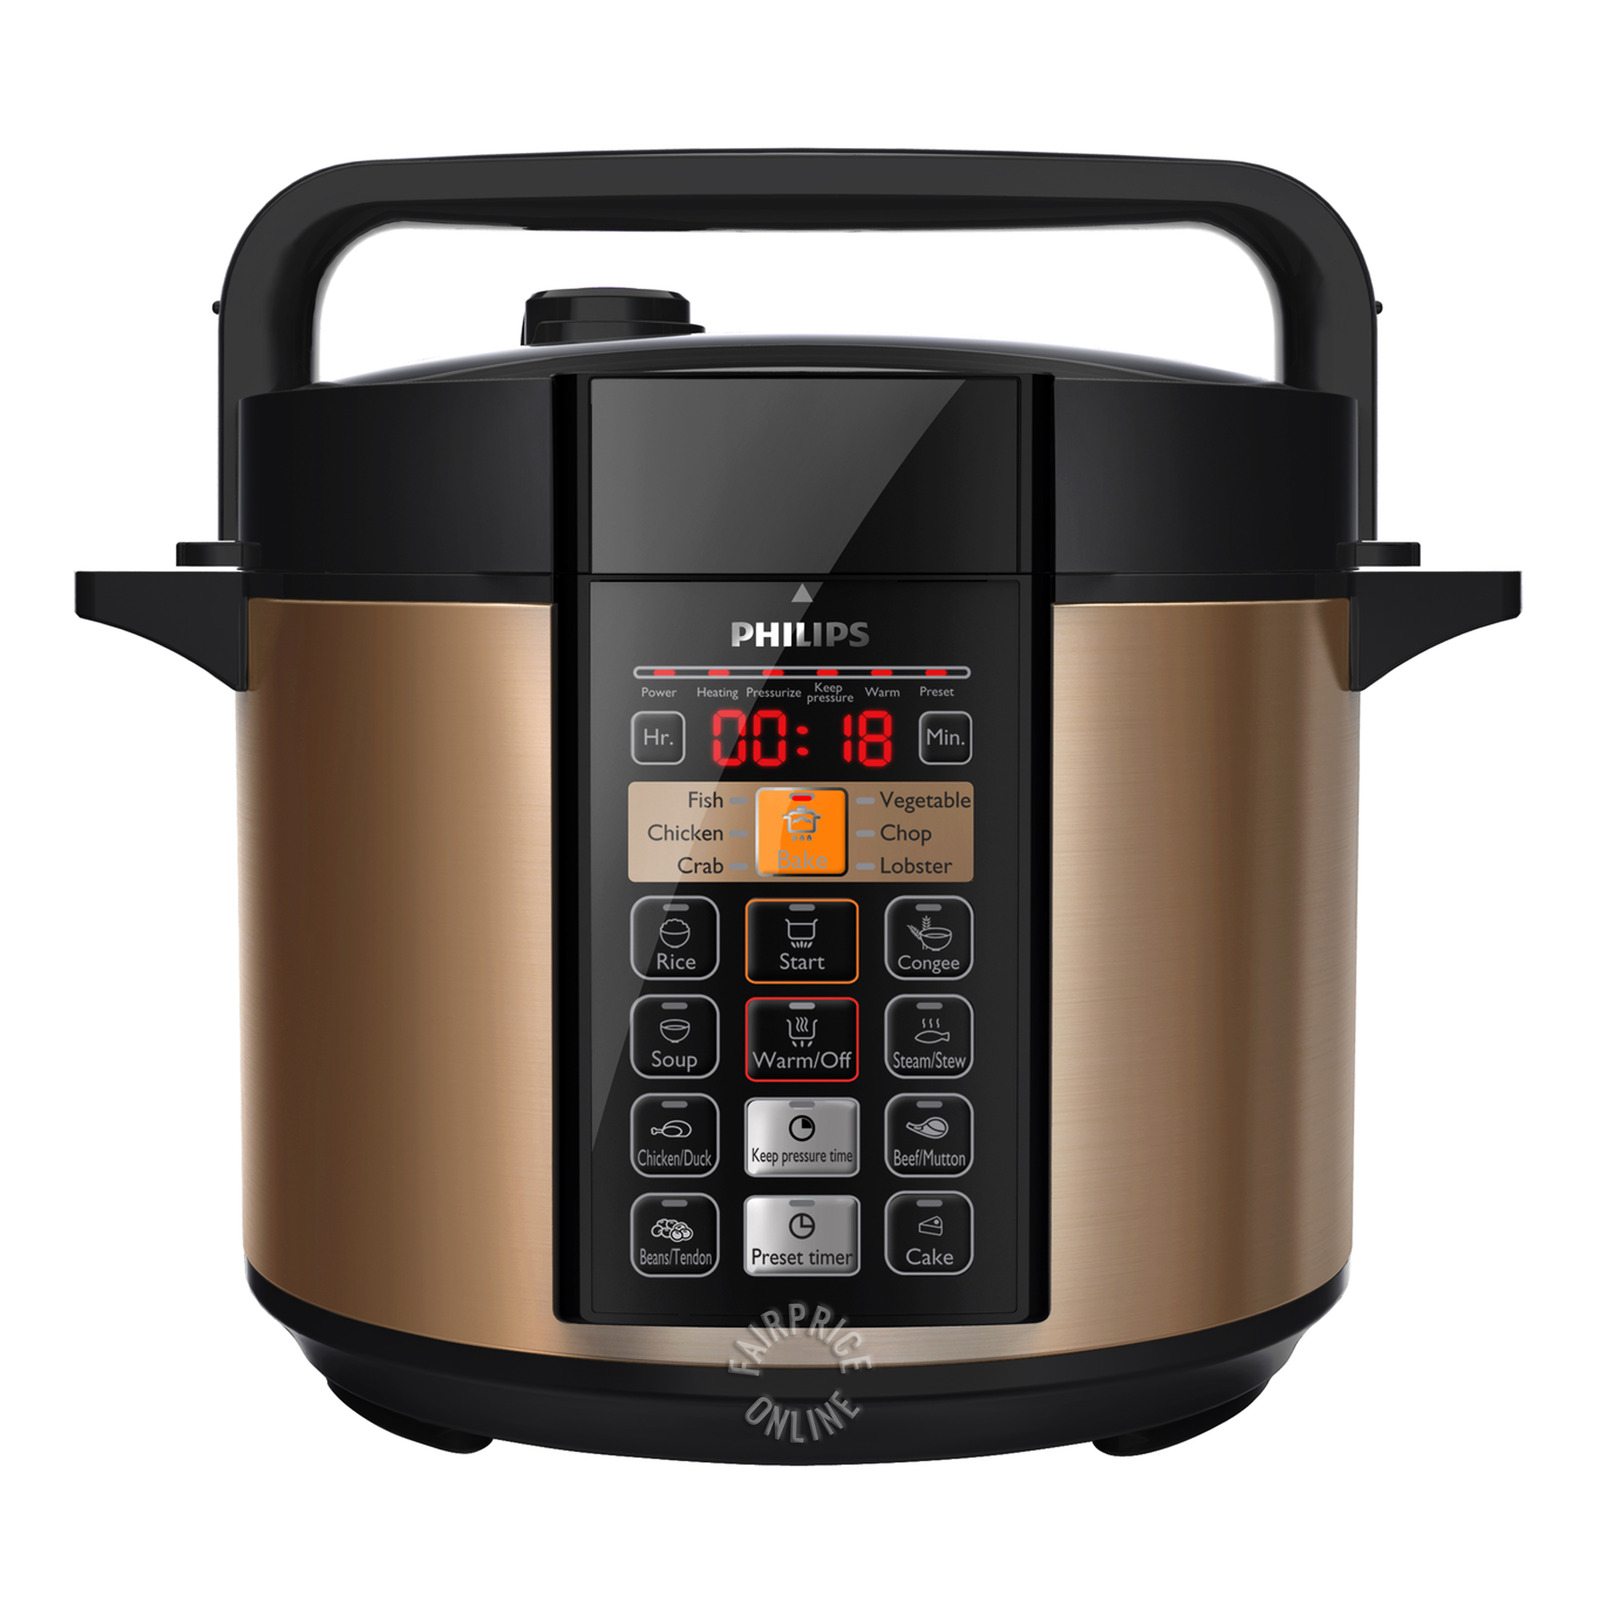 Philips Viva Collection Electric Pressure Cooker